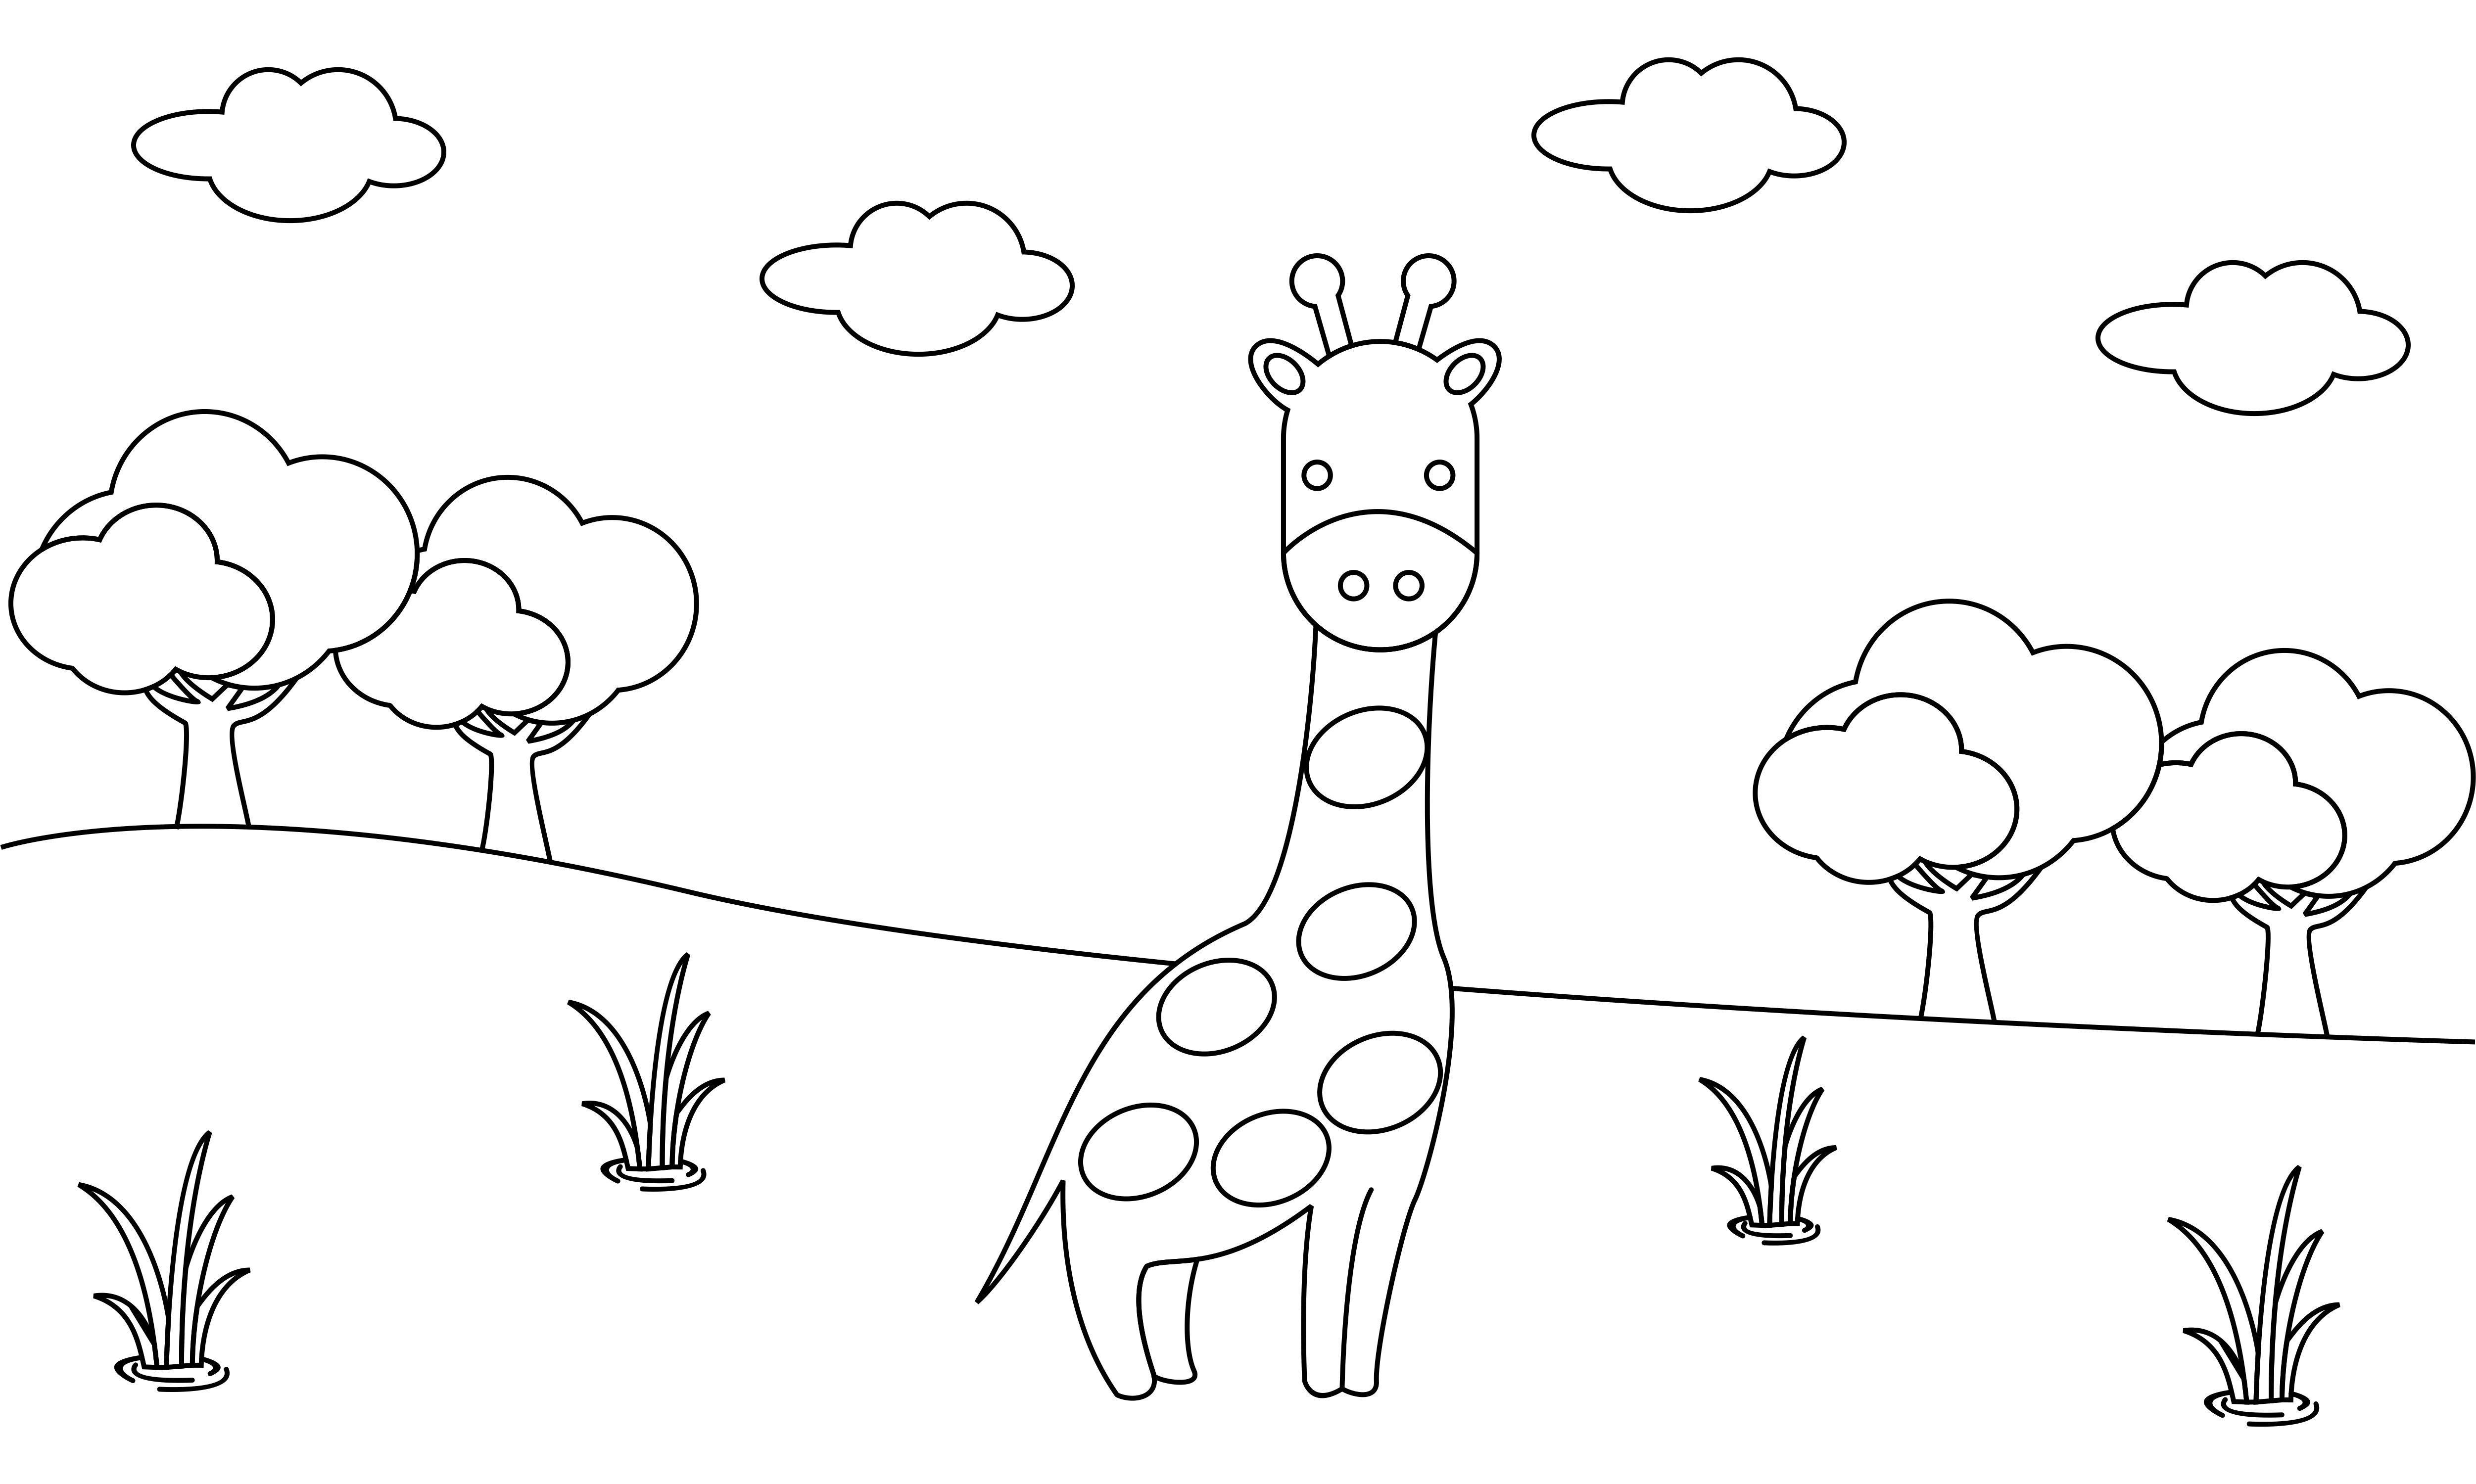 - Coloring Book Animals To Educate Kids. (Graphic) By 2qnah